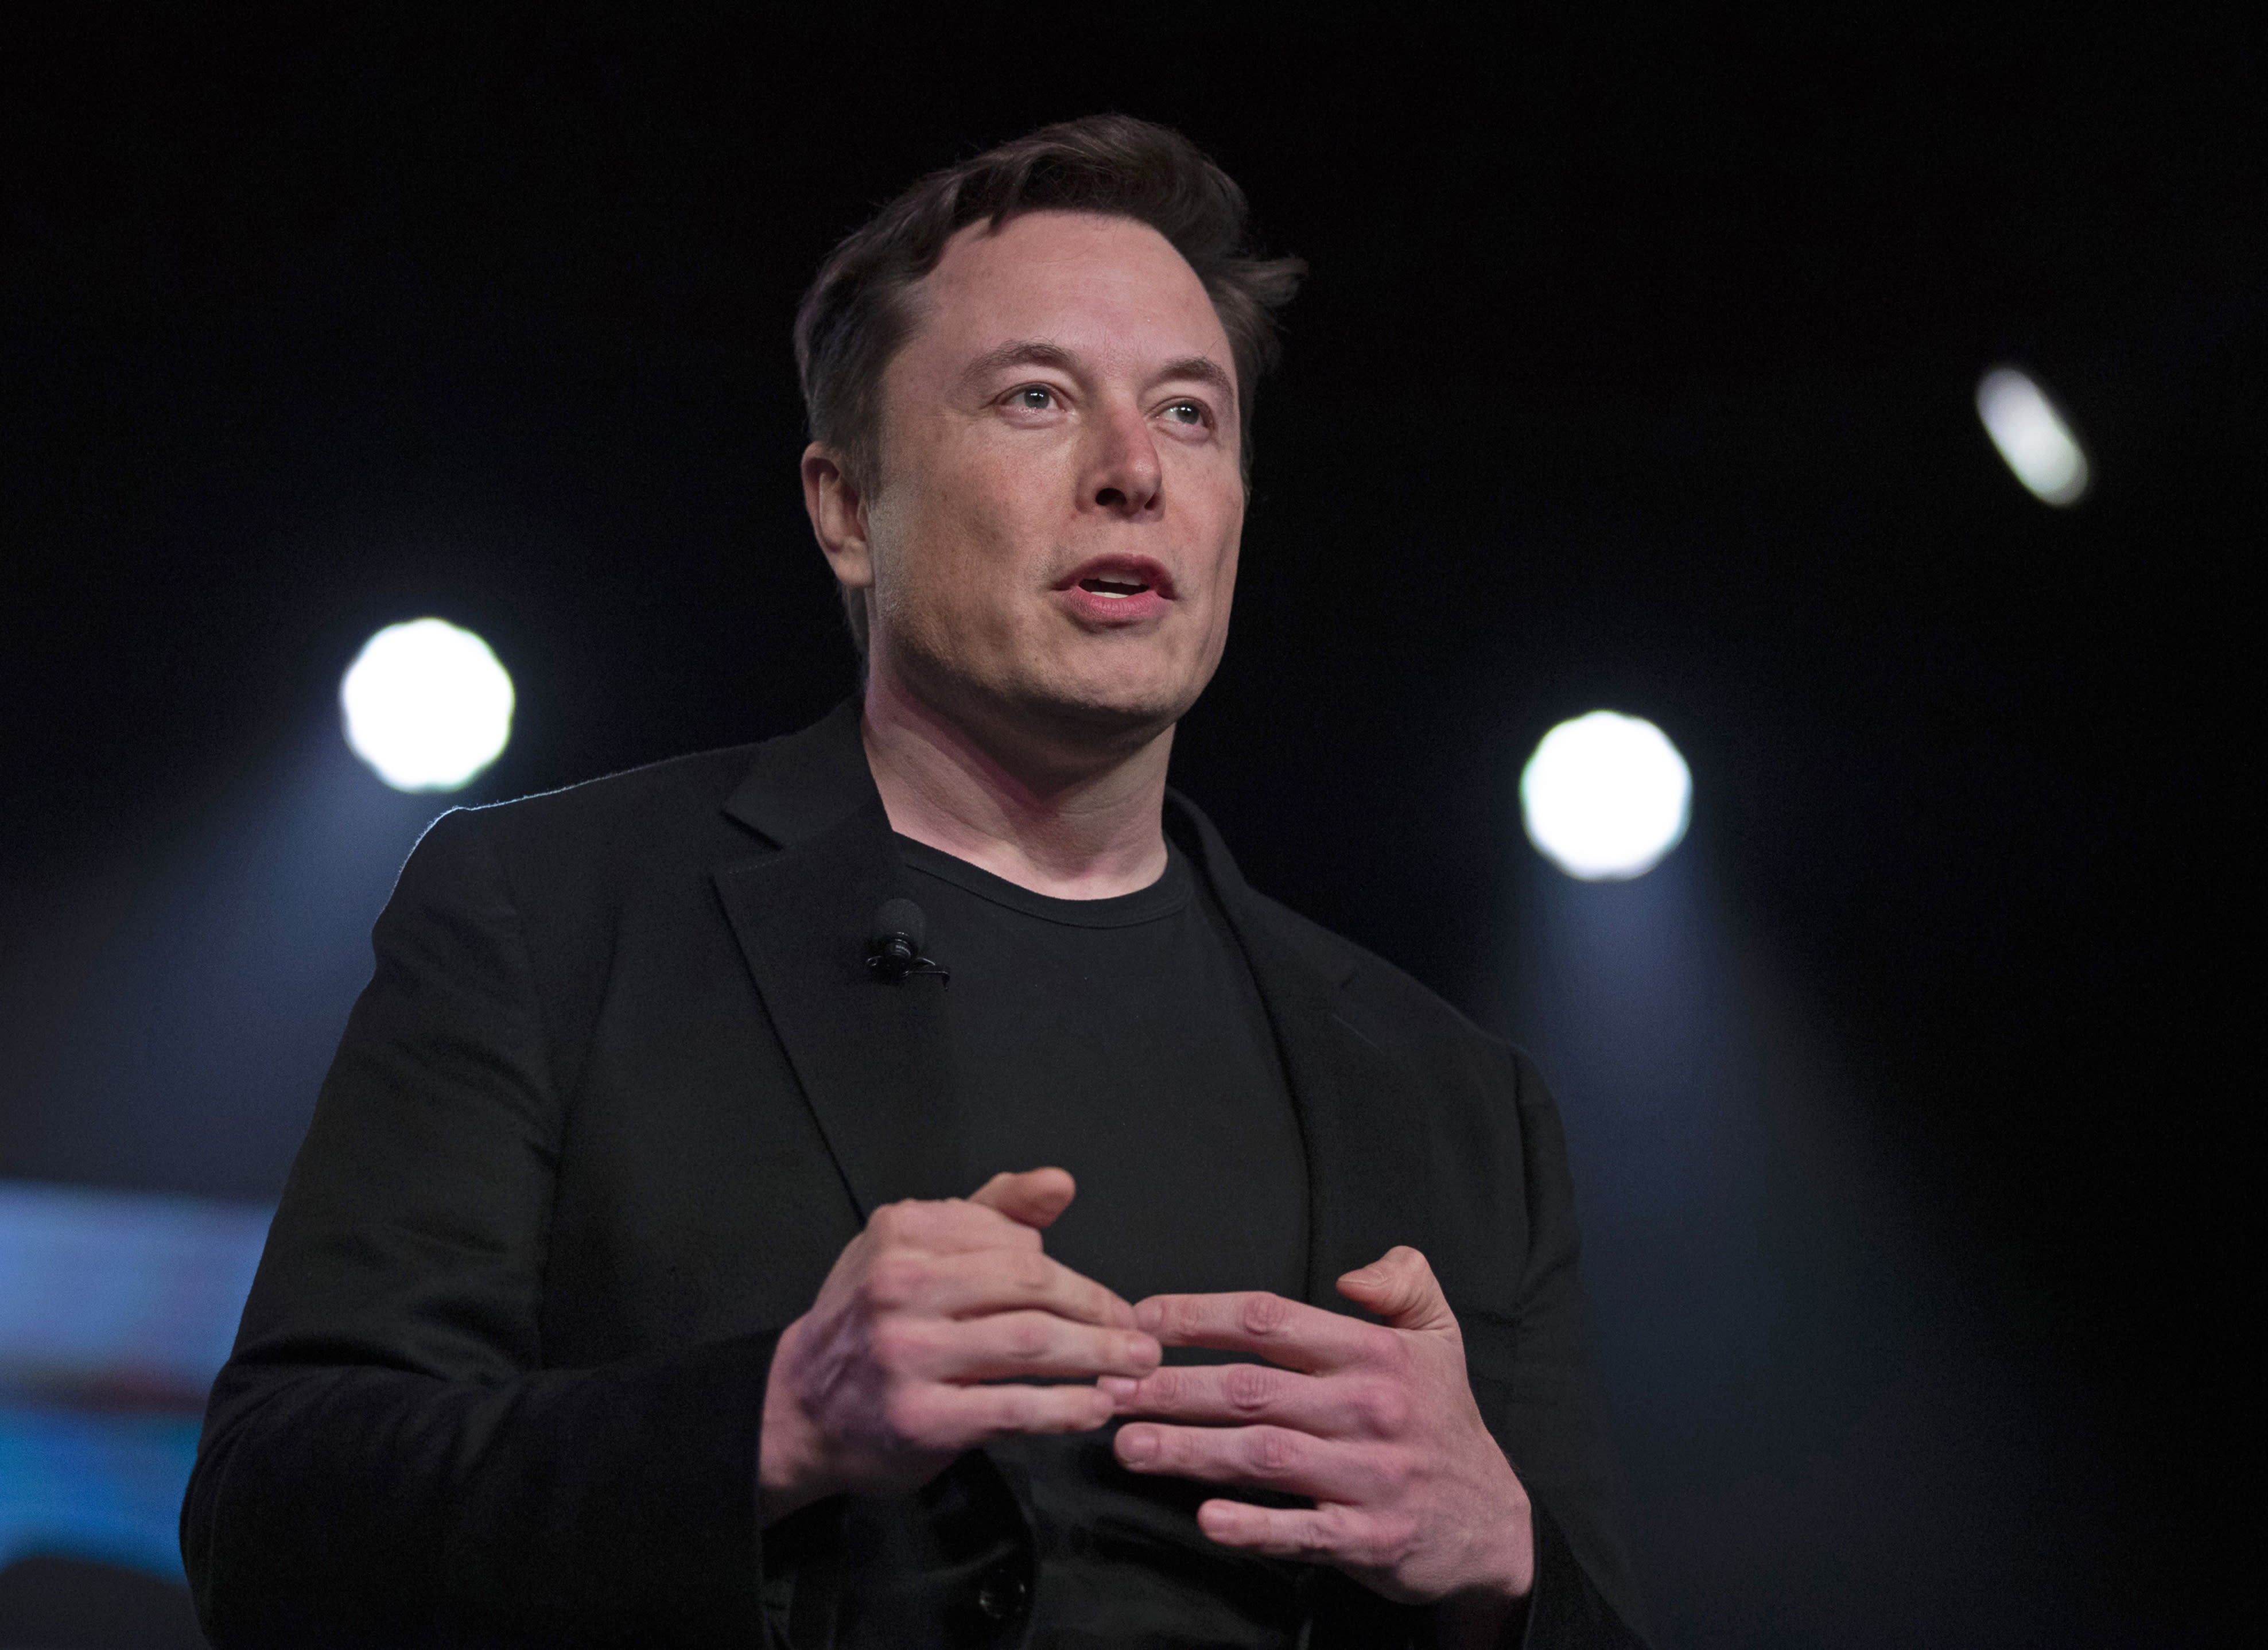 Elon Musk gives Presidential Candidate Andrew Yang his support.